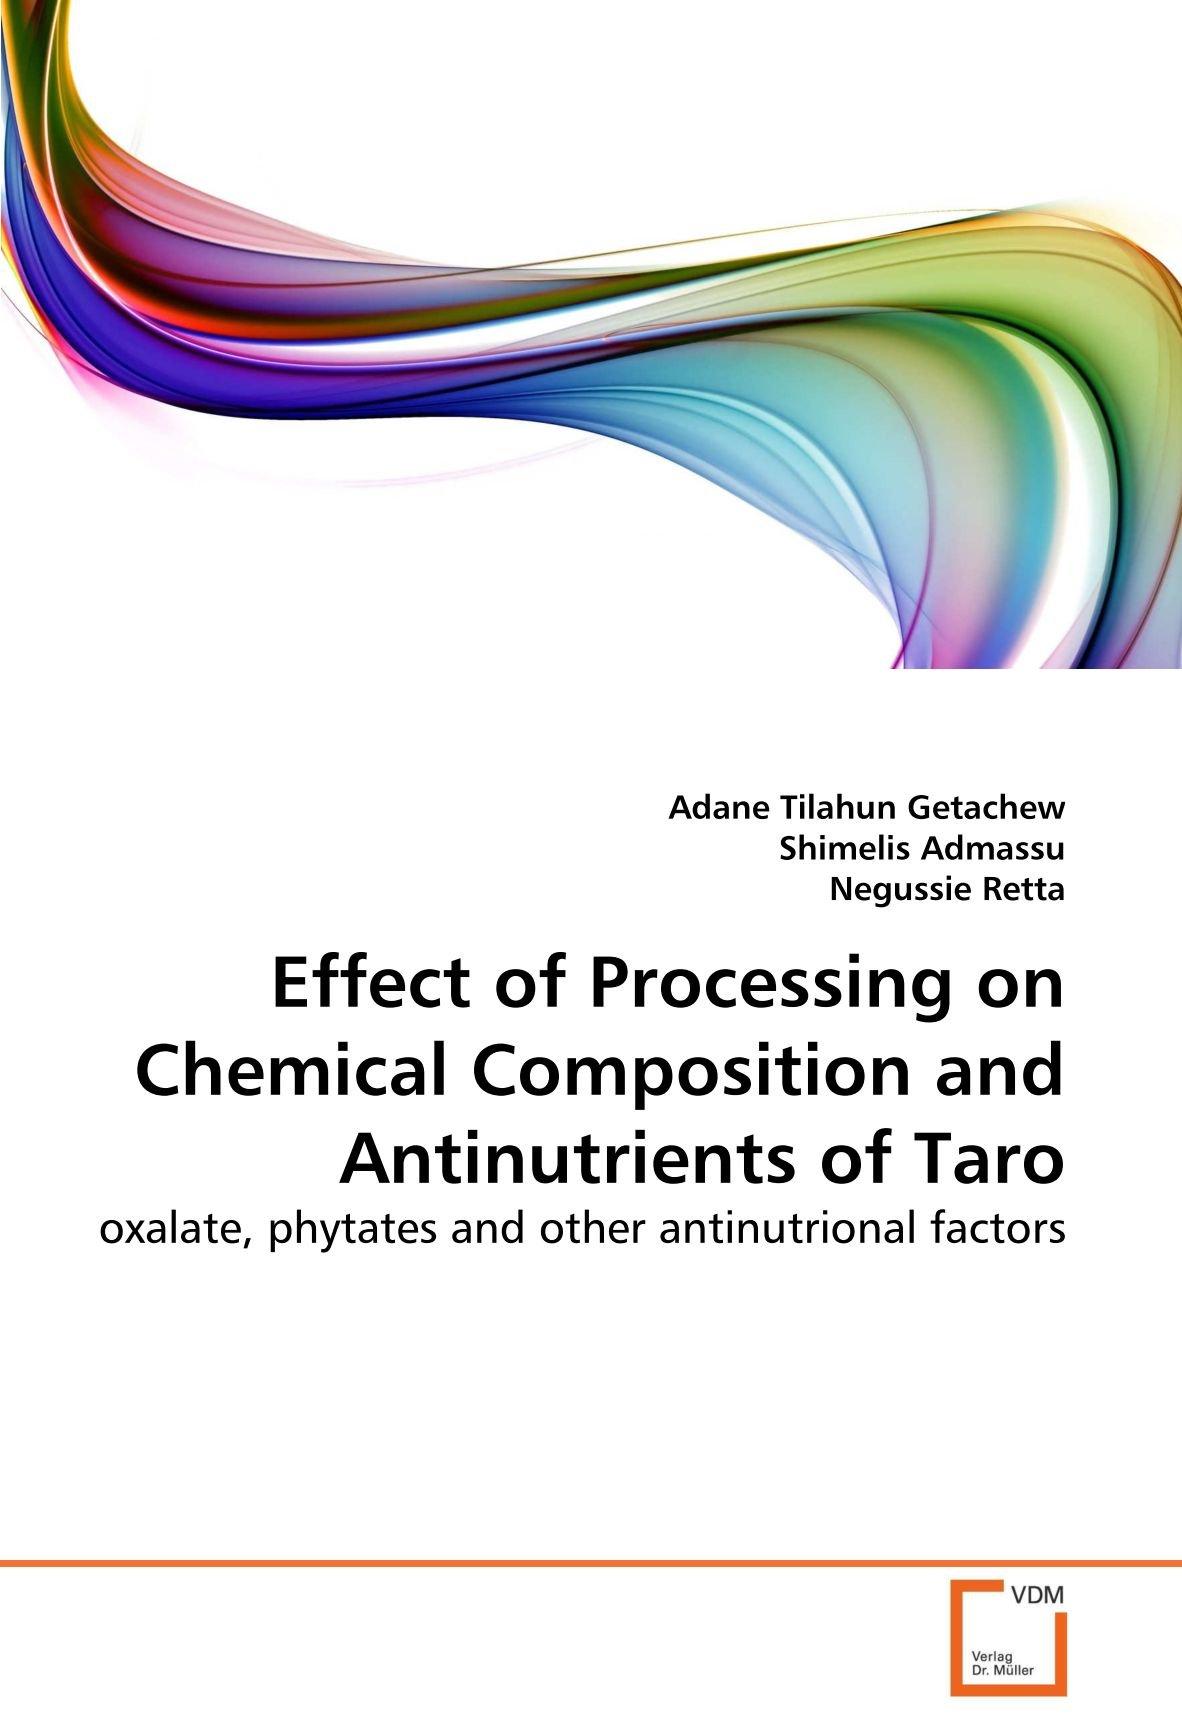 Effect of Processing on Chemical Composition and